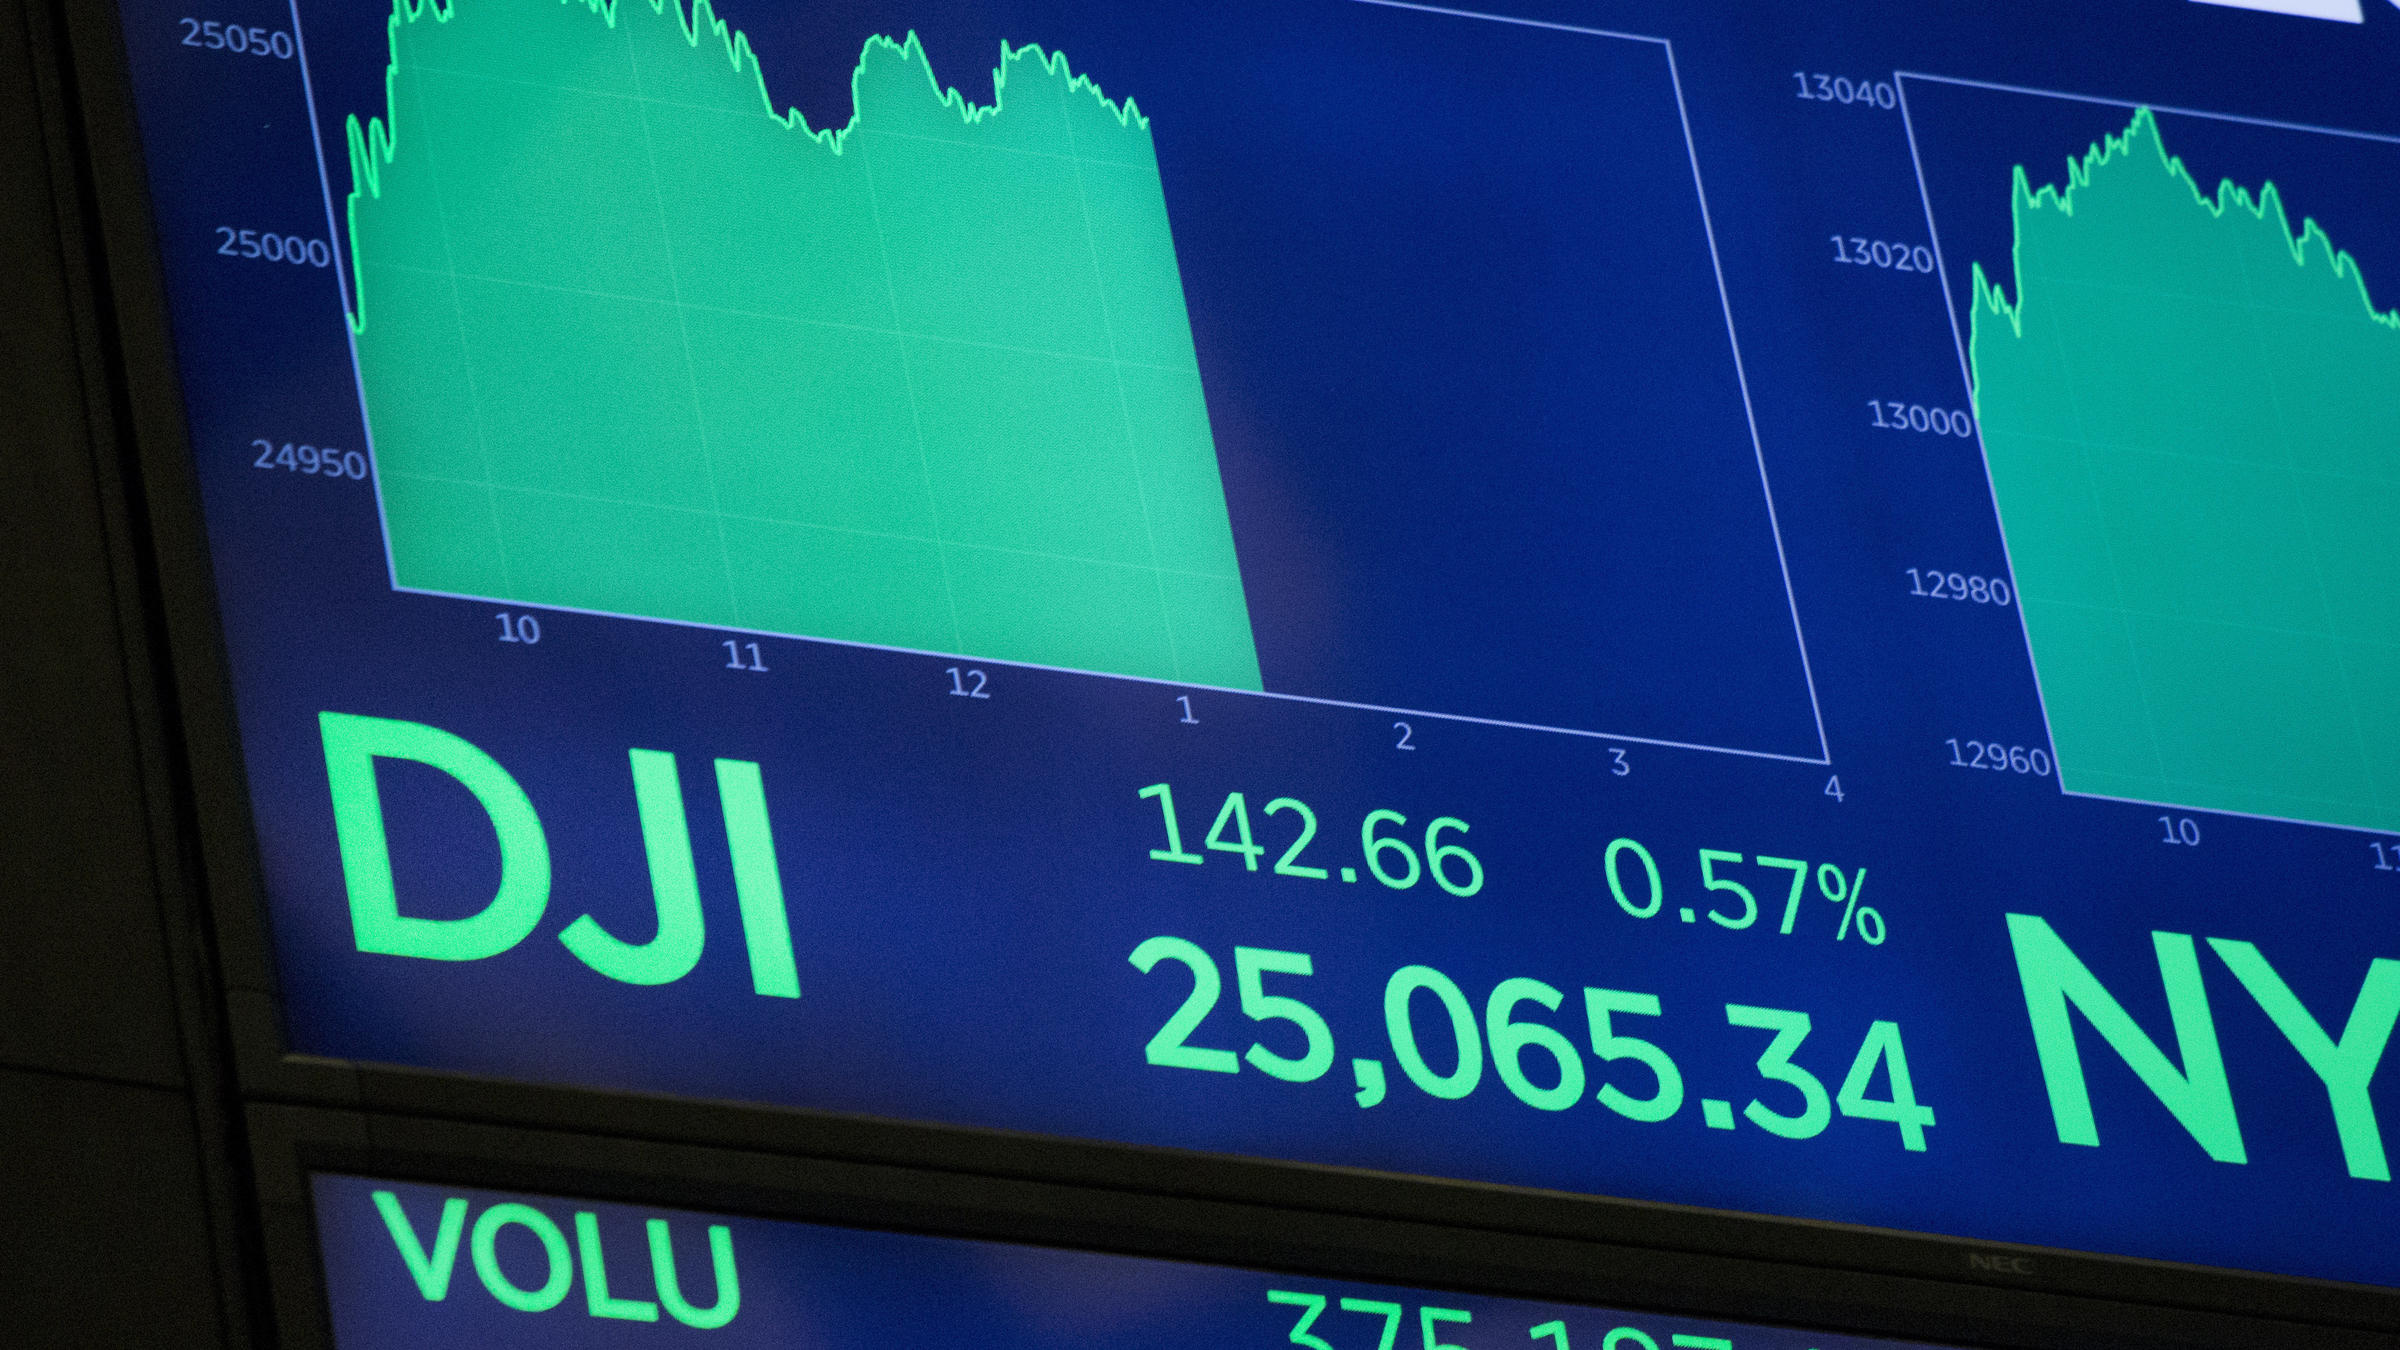 Dow Jones closes above 25000 for first time